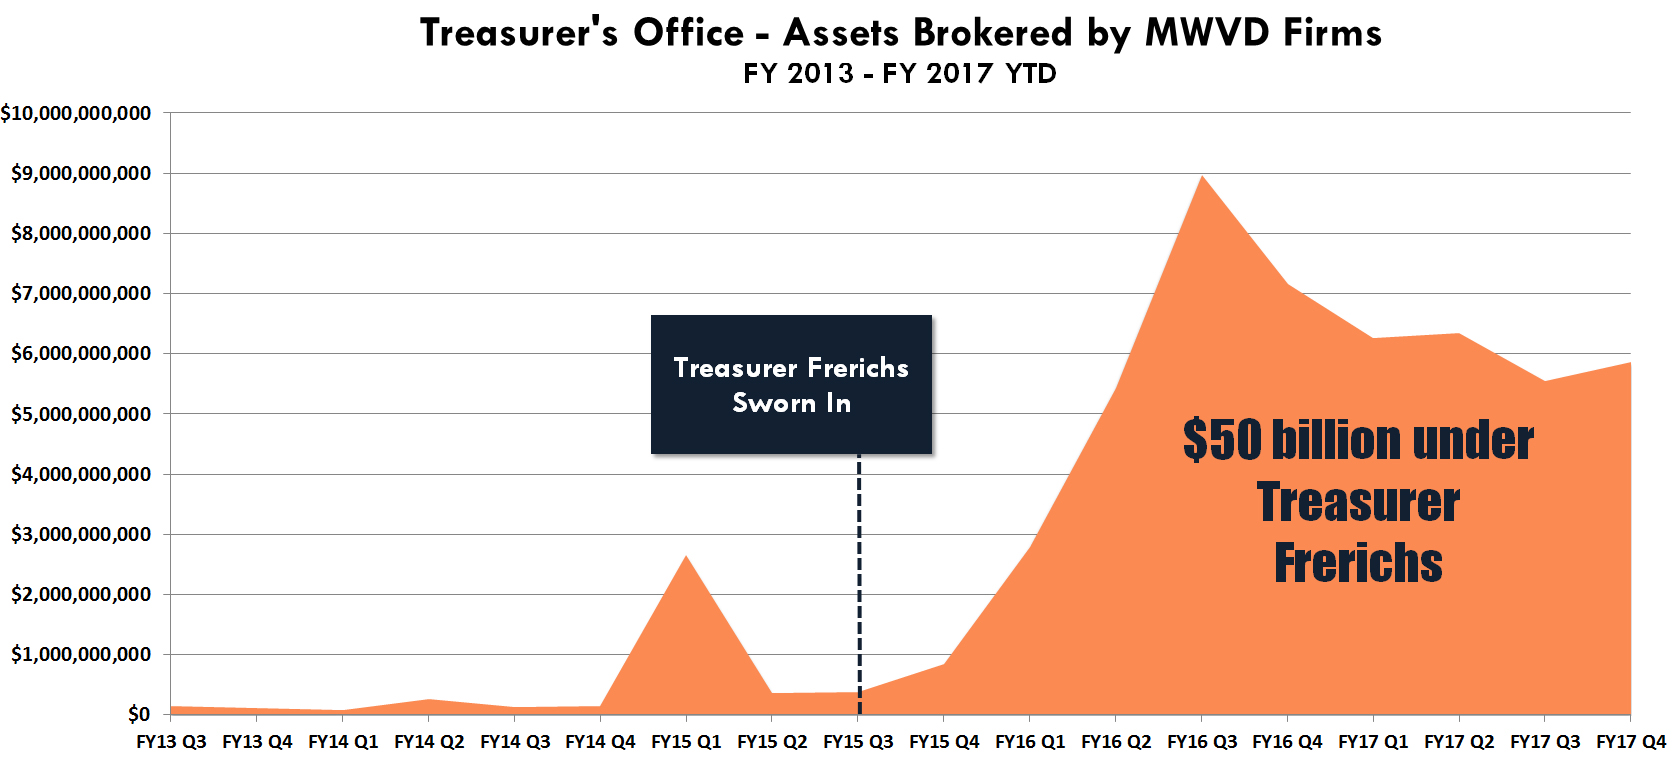 Assets Brokered by MWVD Firms